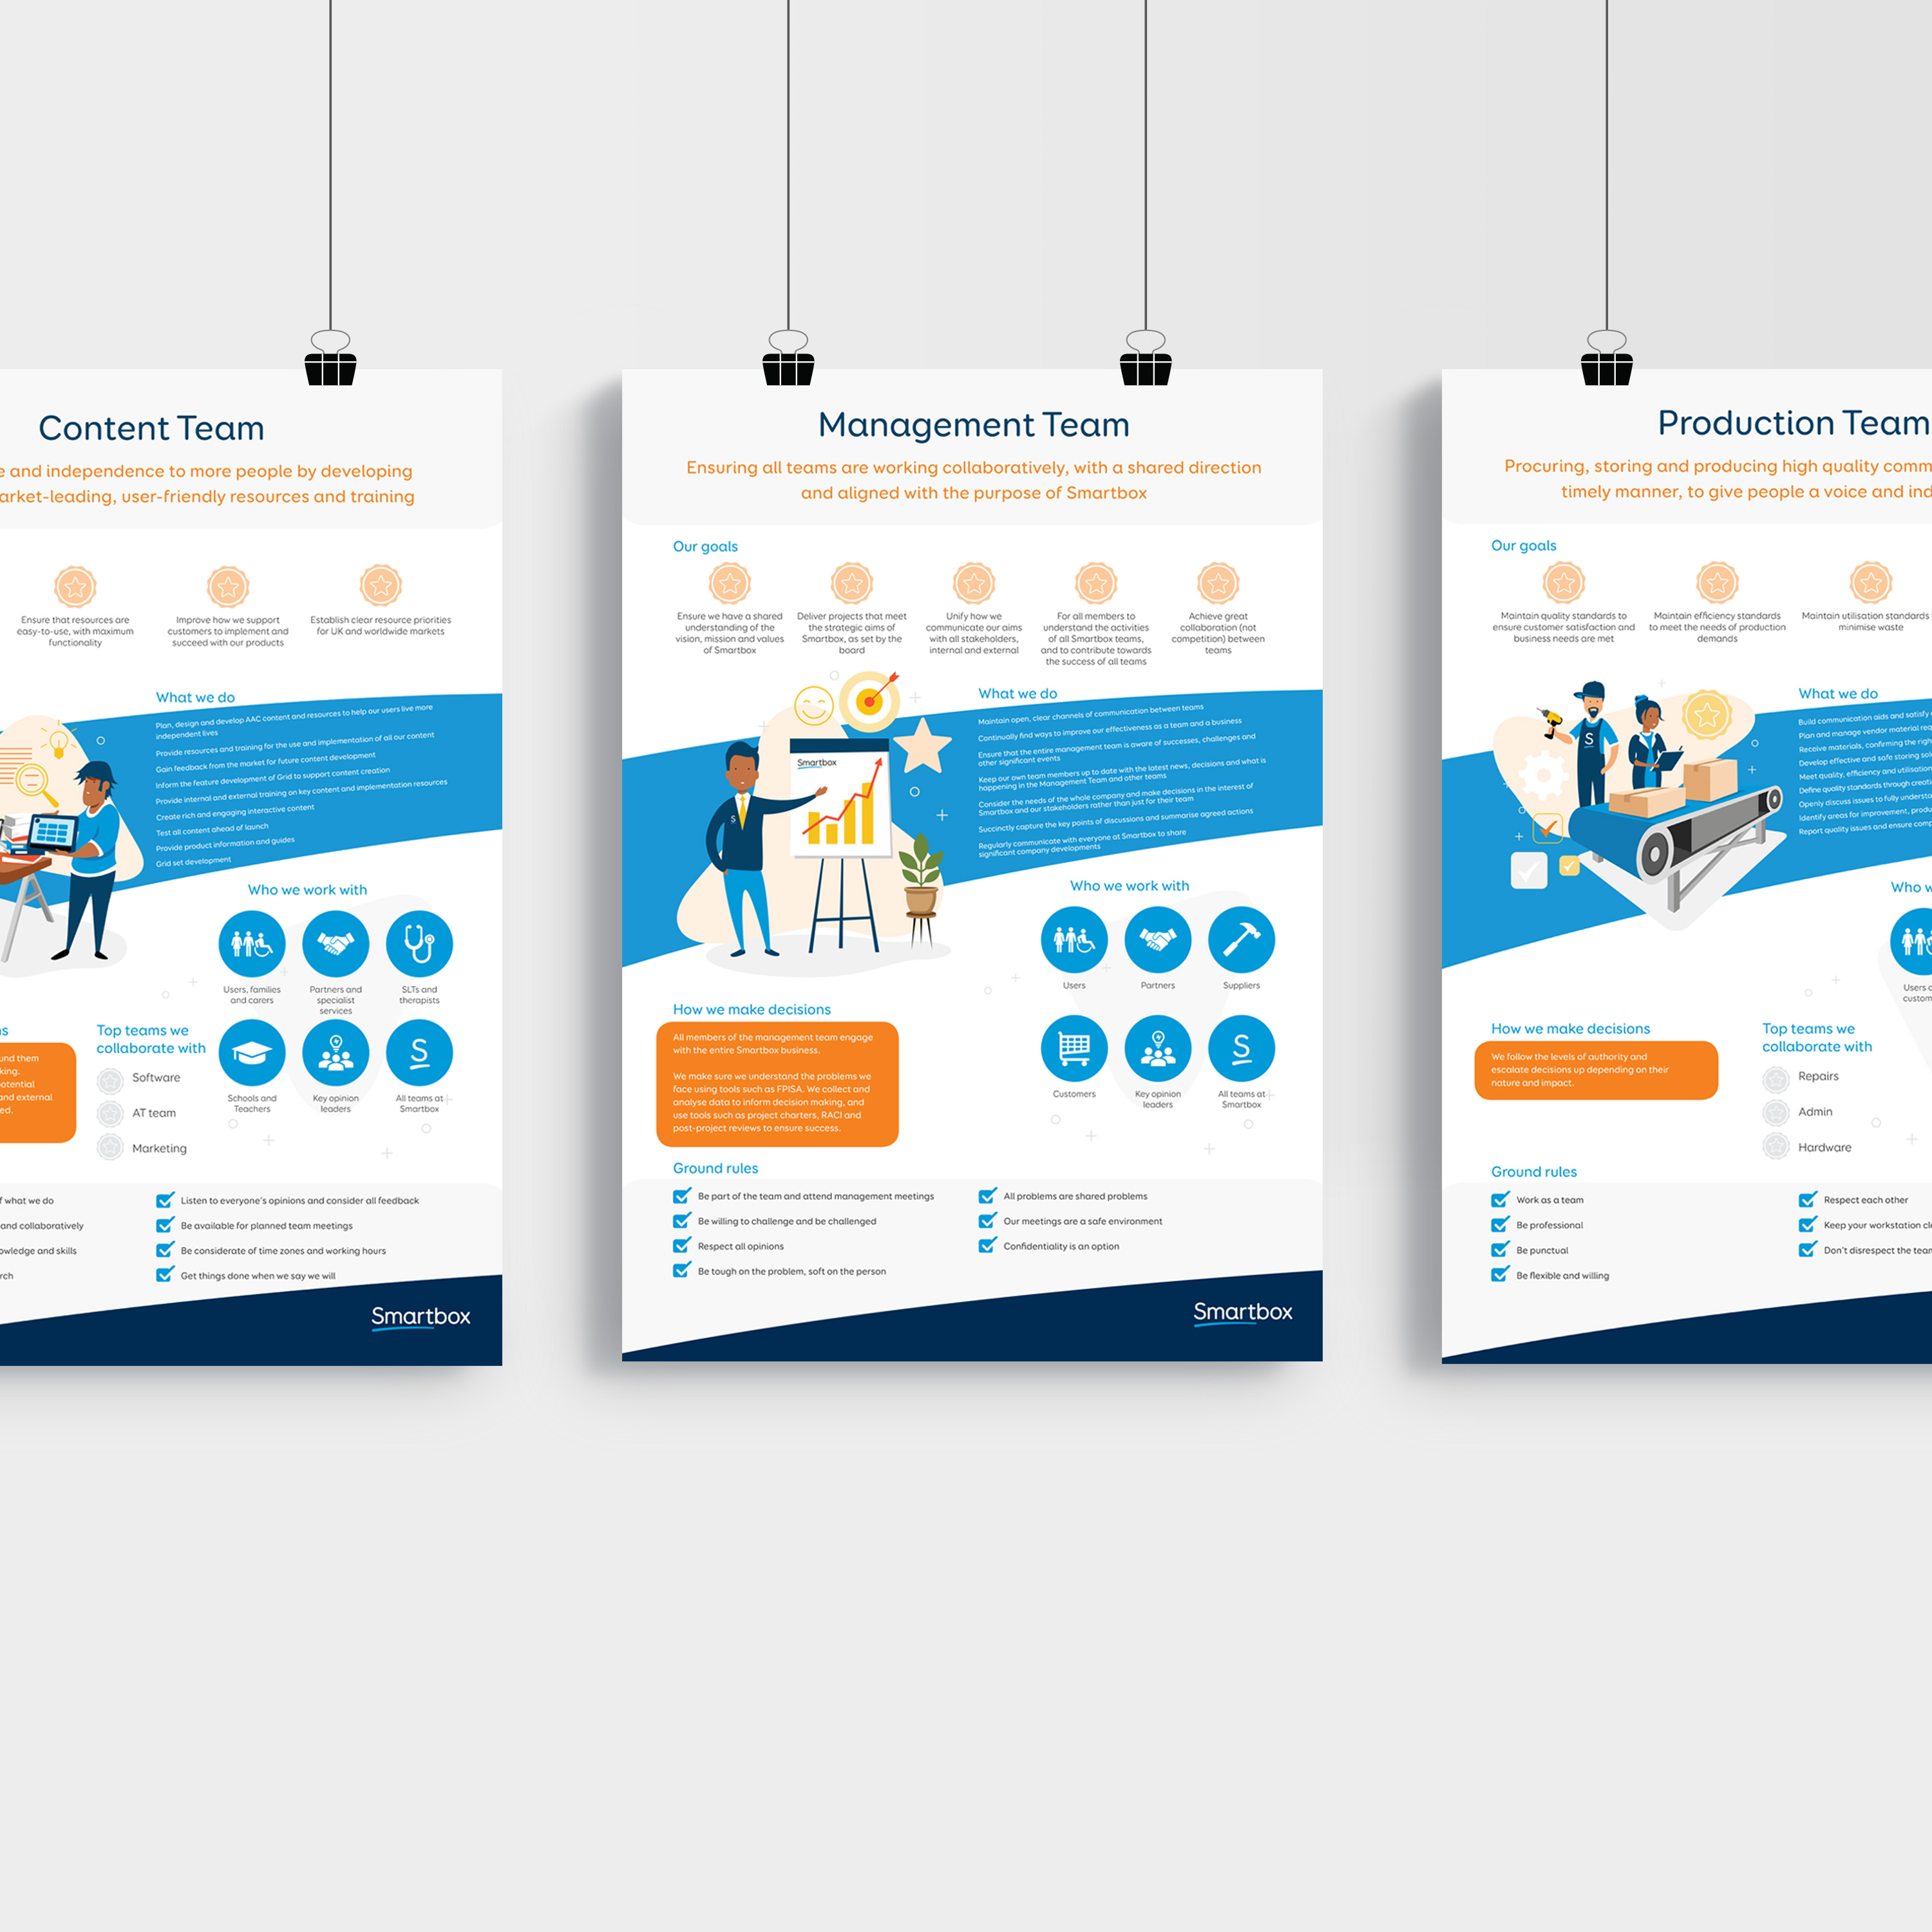 Smartbox Internal Comms Posters